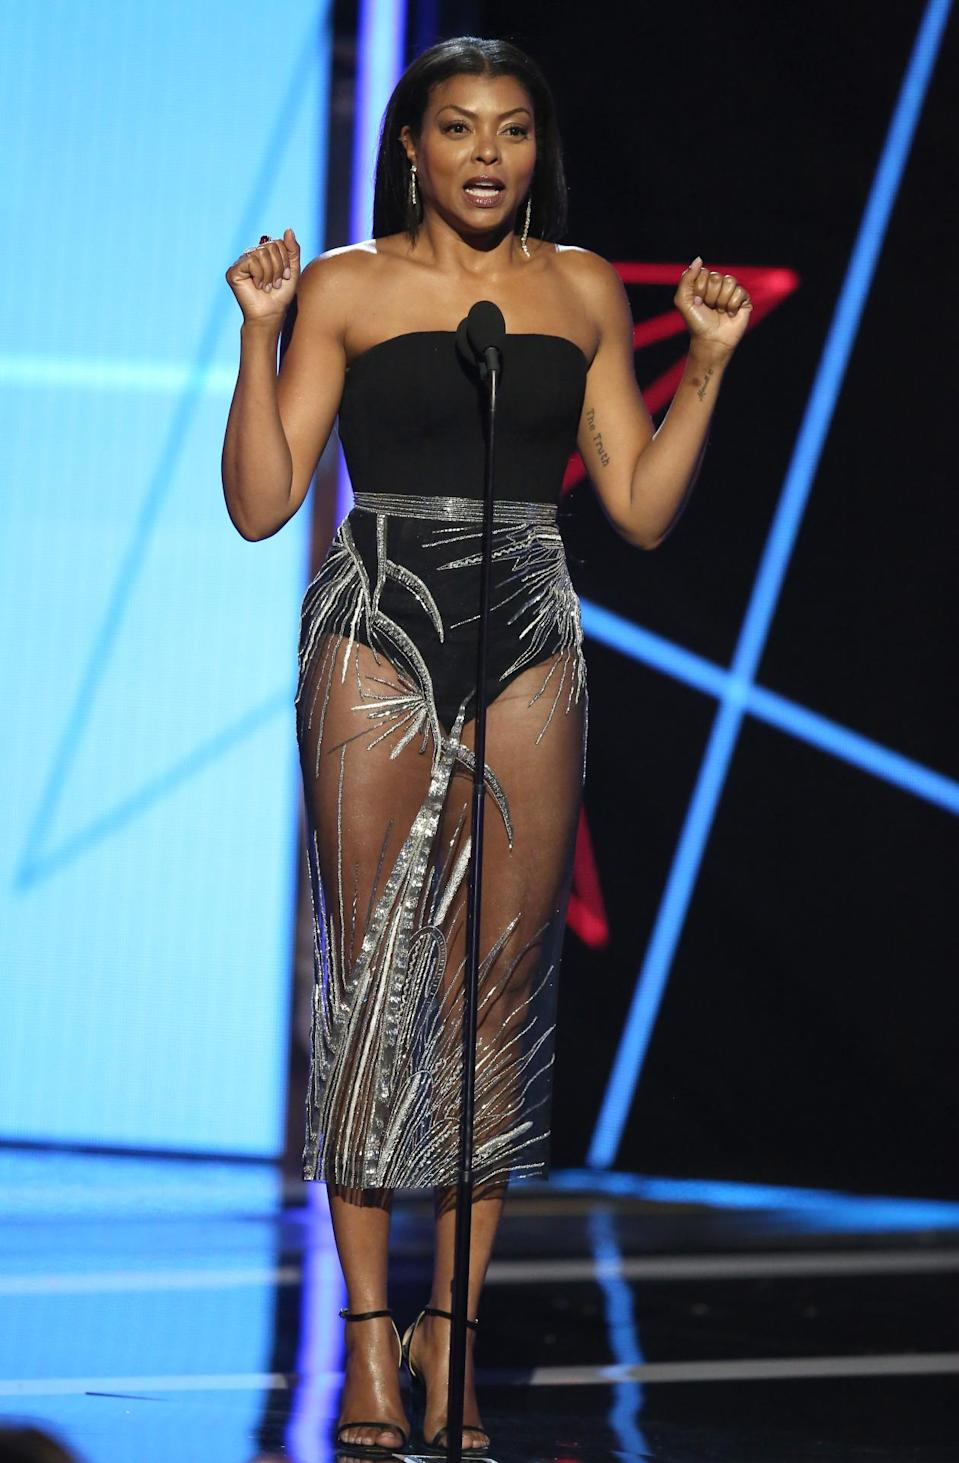 <p>Now that's how you do 45. The actress looked amazing in a strapless leotard with a sheer black skirt embellished with sequins. <i>(Photo: Getty Images)</i></p>